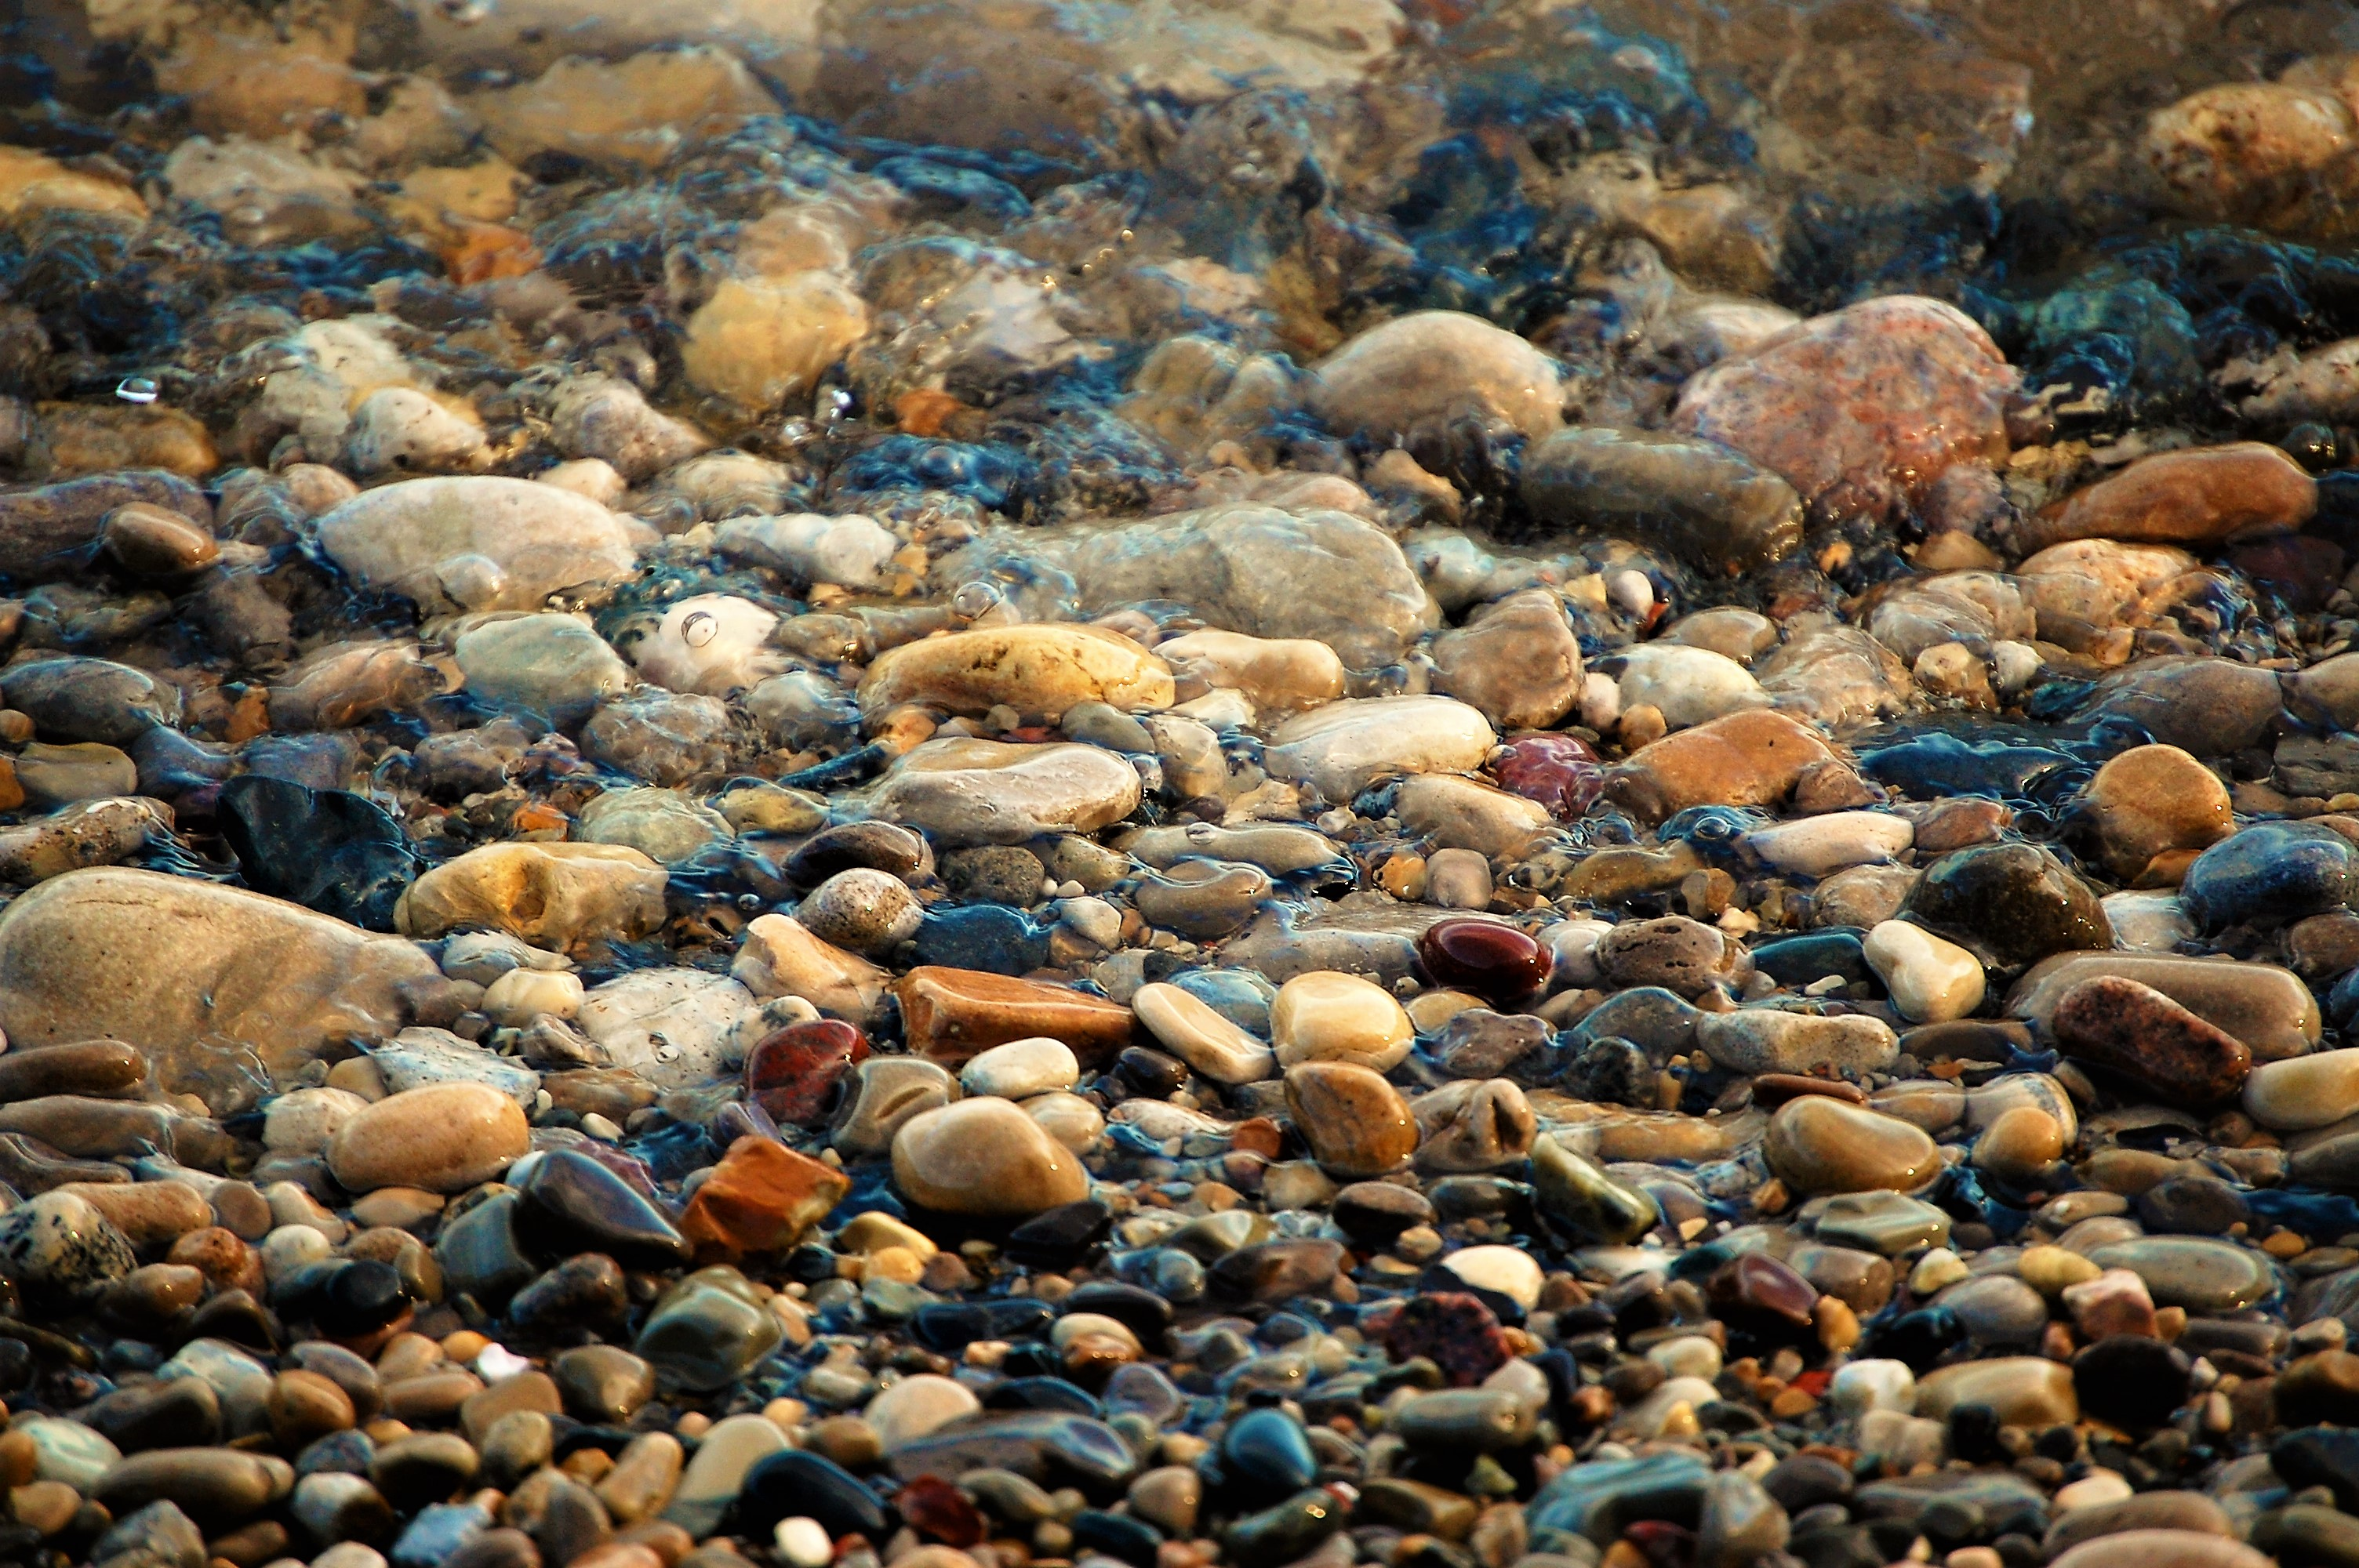 Water on the Rocks, Blue, Brook, Brown, Colorful, HQ Photo